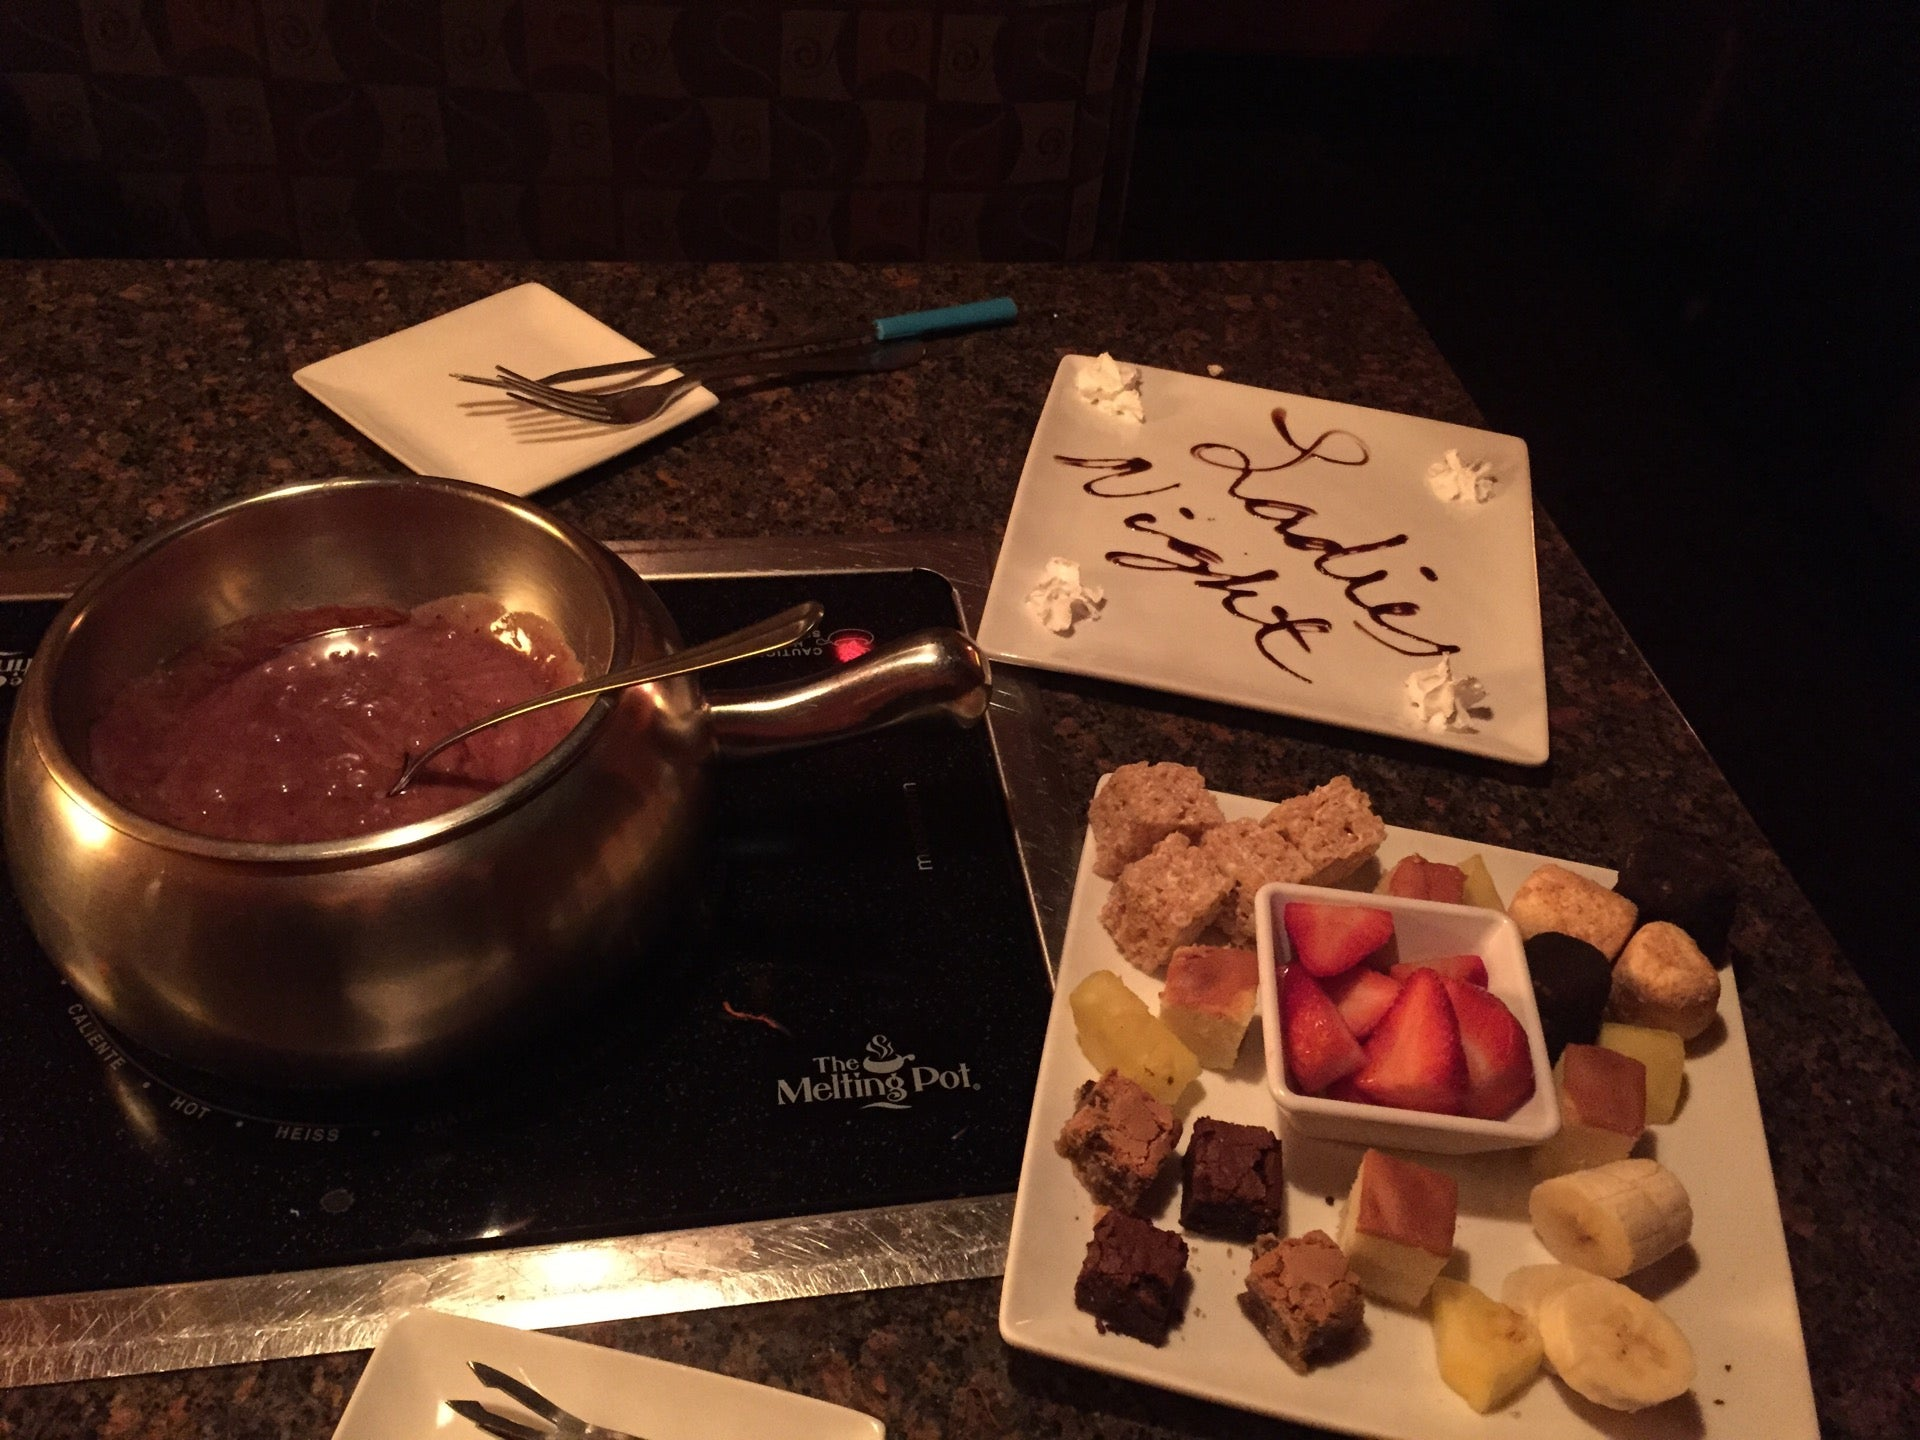 The Melting Pot,